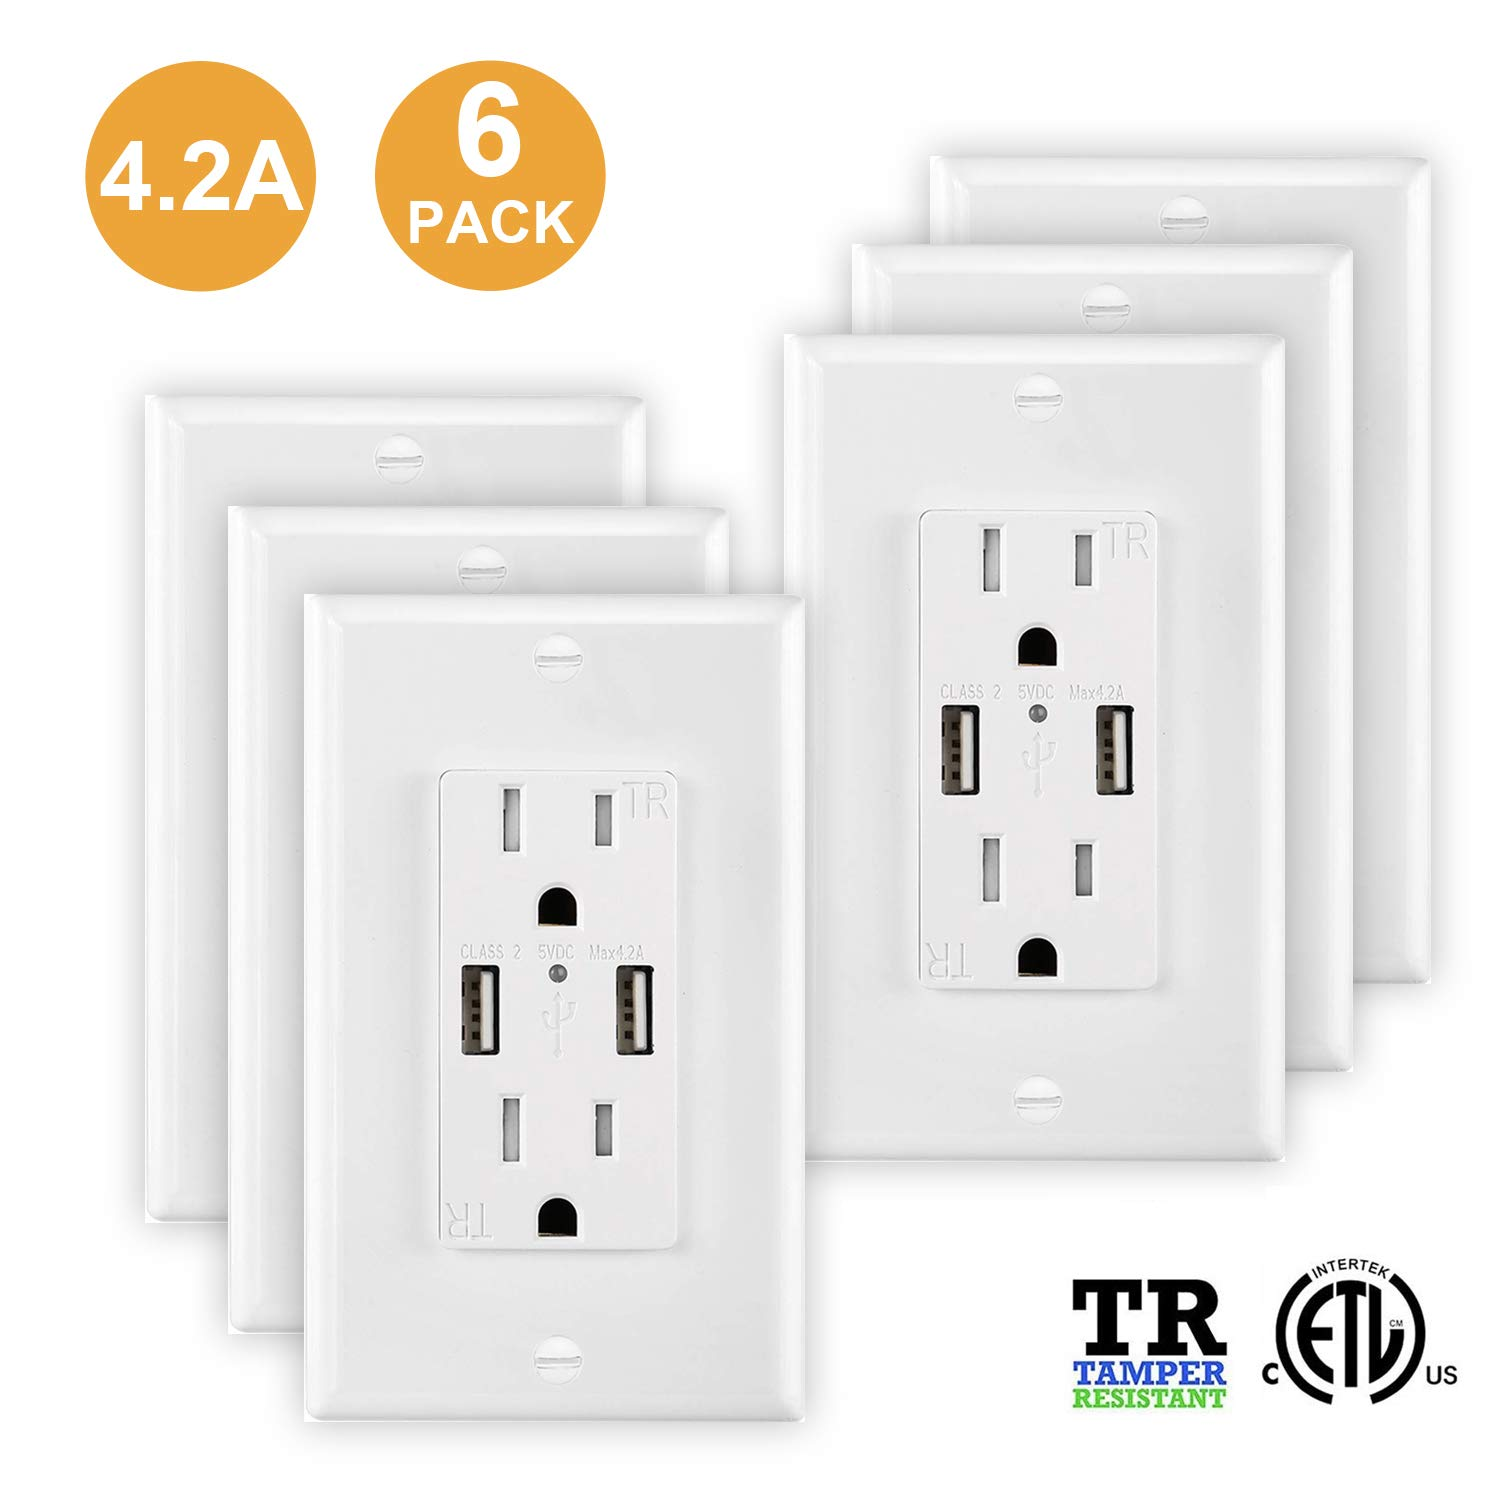 USB Outlet, 6 Pack USB Outlet Charger Wall Plate,Fast Charger, High Speed Decora Outlet, Duplex Receptacle with Dual USB Ports 15A 125V 60Hz Tamper Resistant & Free Wallplate, White by DbillionDa